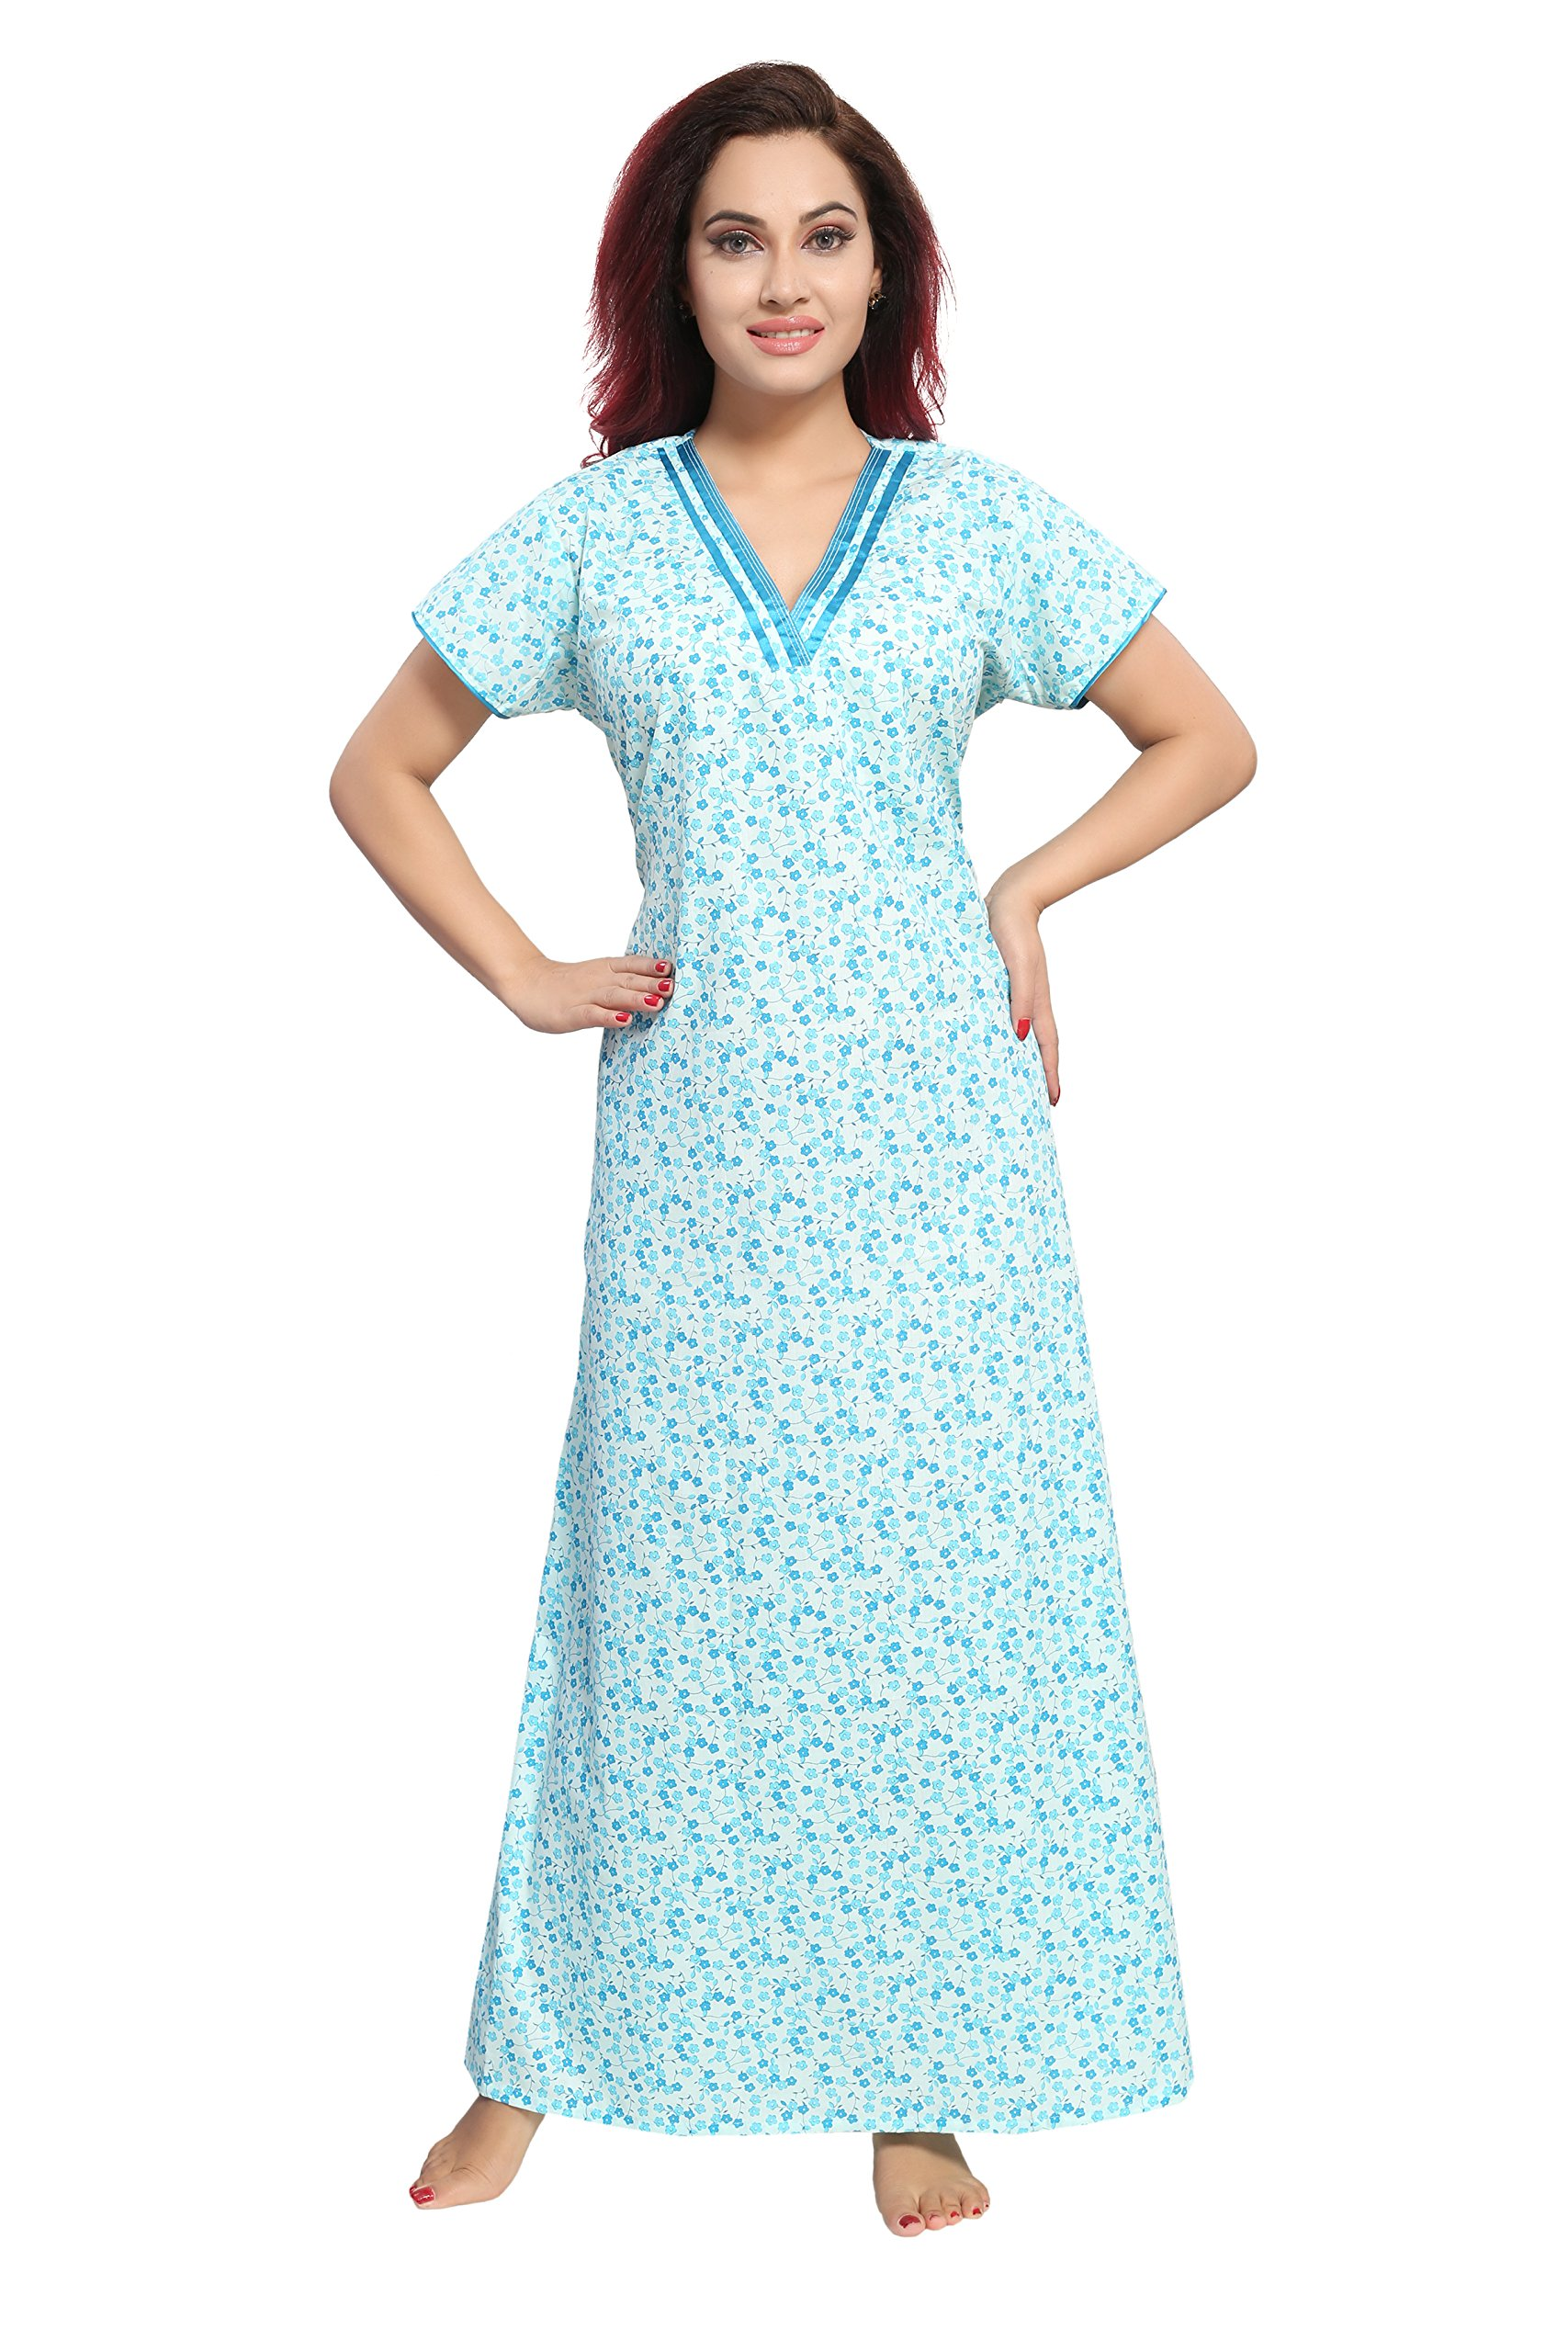 TUCUTE Women's Cotton Fabric Night Gown Nightwear with Beautiful Floral Print Size: X-Large (Blue-2163)